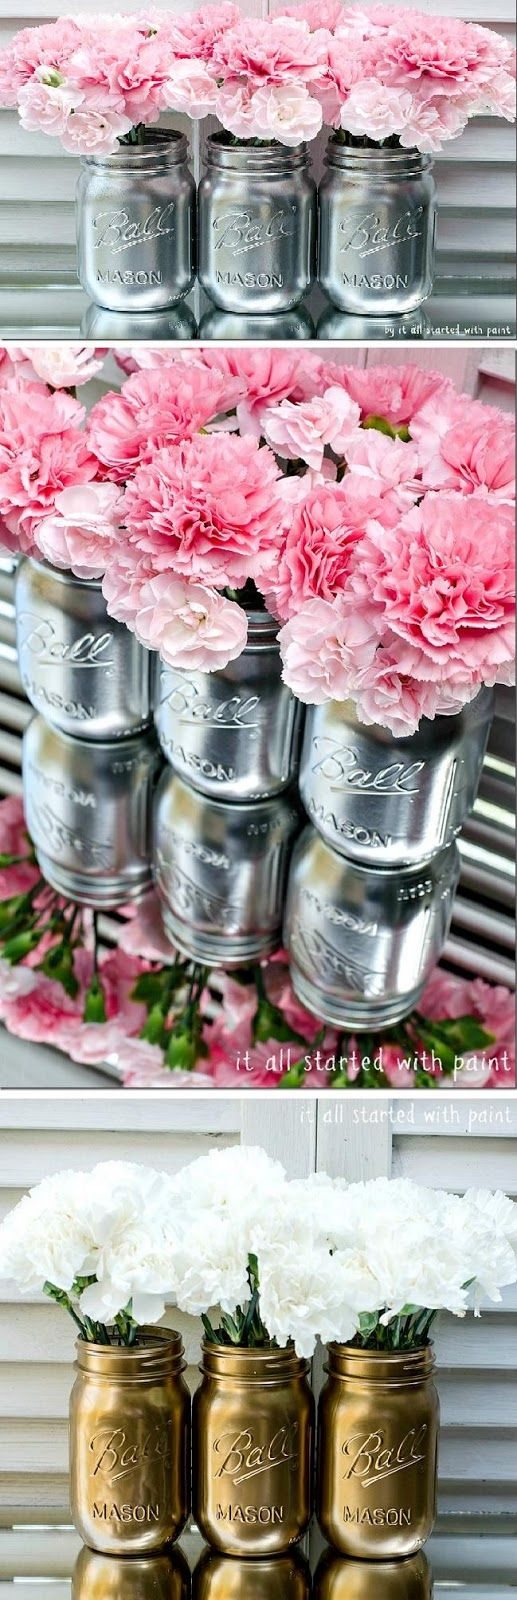 Pink flowers and white roses - Metallic painted mason jars